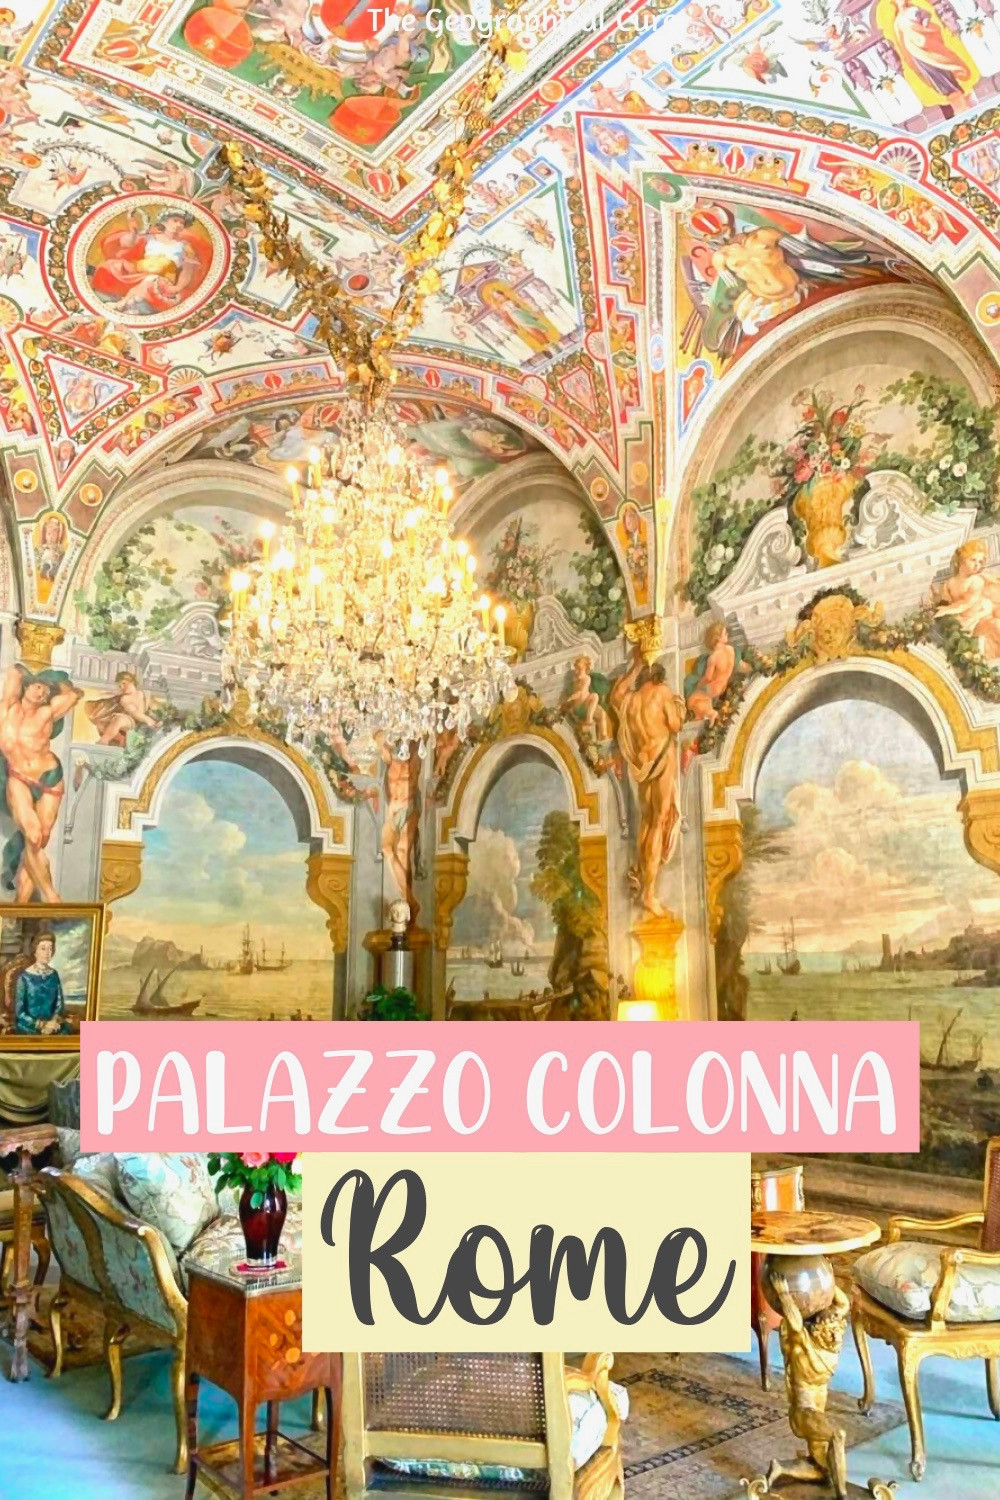 Ulitmate Guide to Palazzo Colonna, a Hidden Gem in Rome Italy